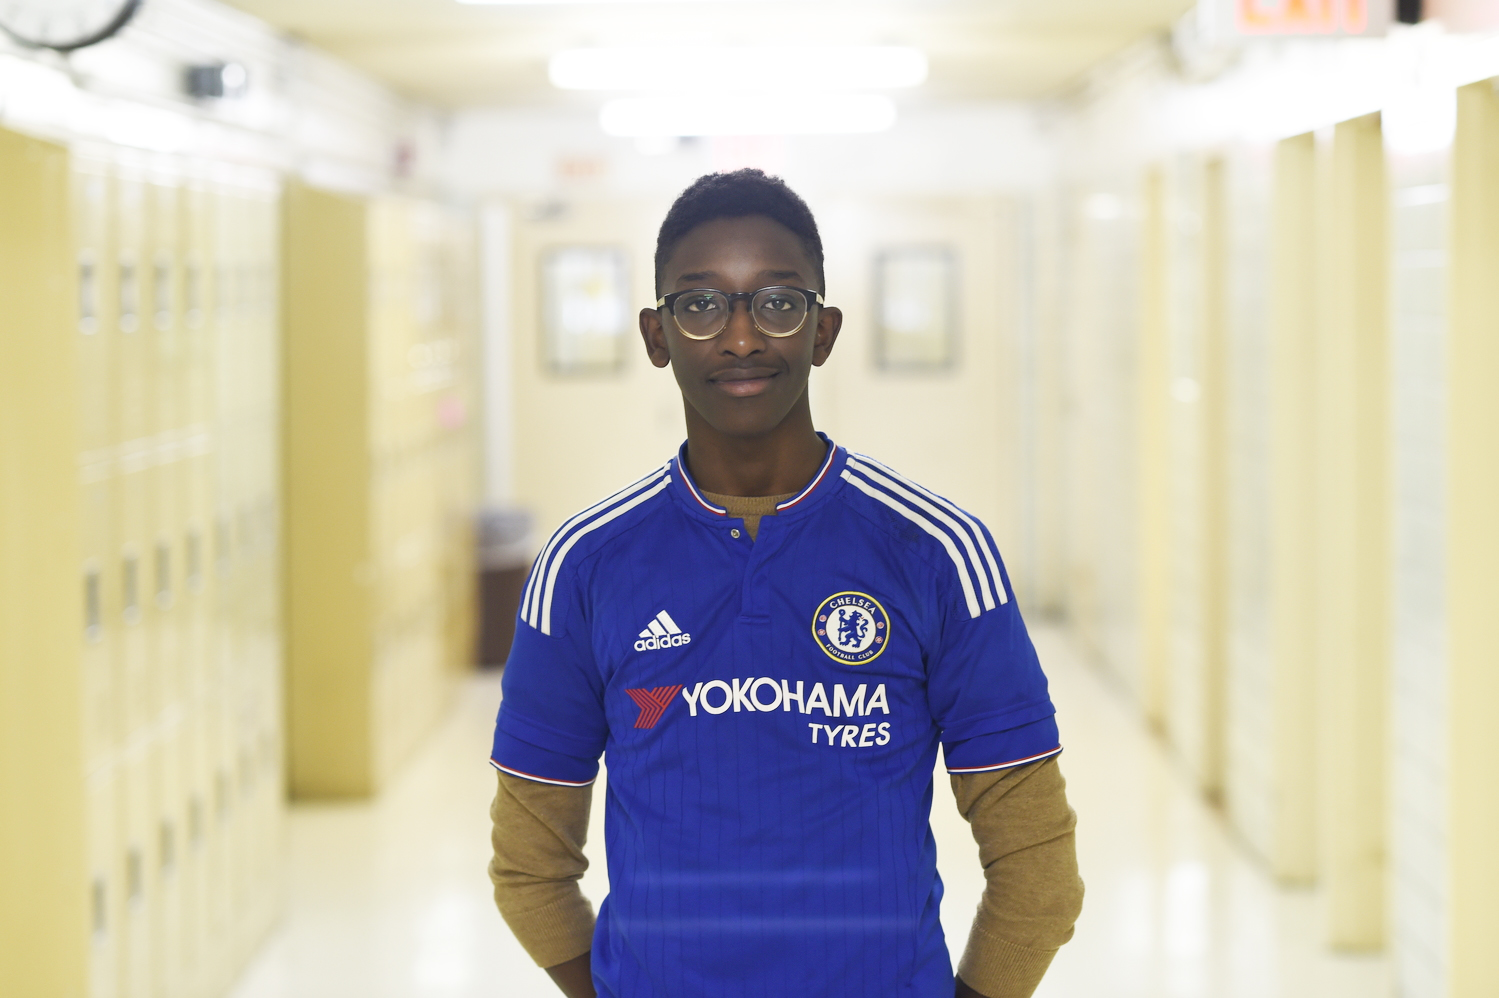 LiChai Epperson '19 wears his favorite Chelsea jersey.